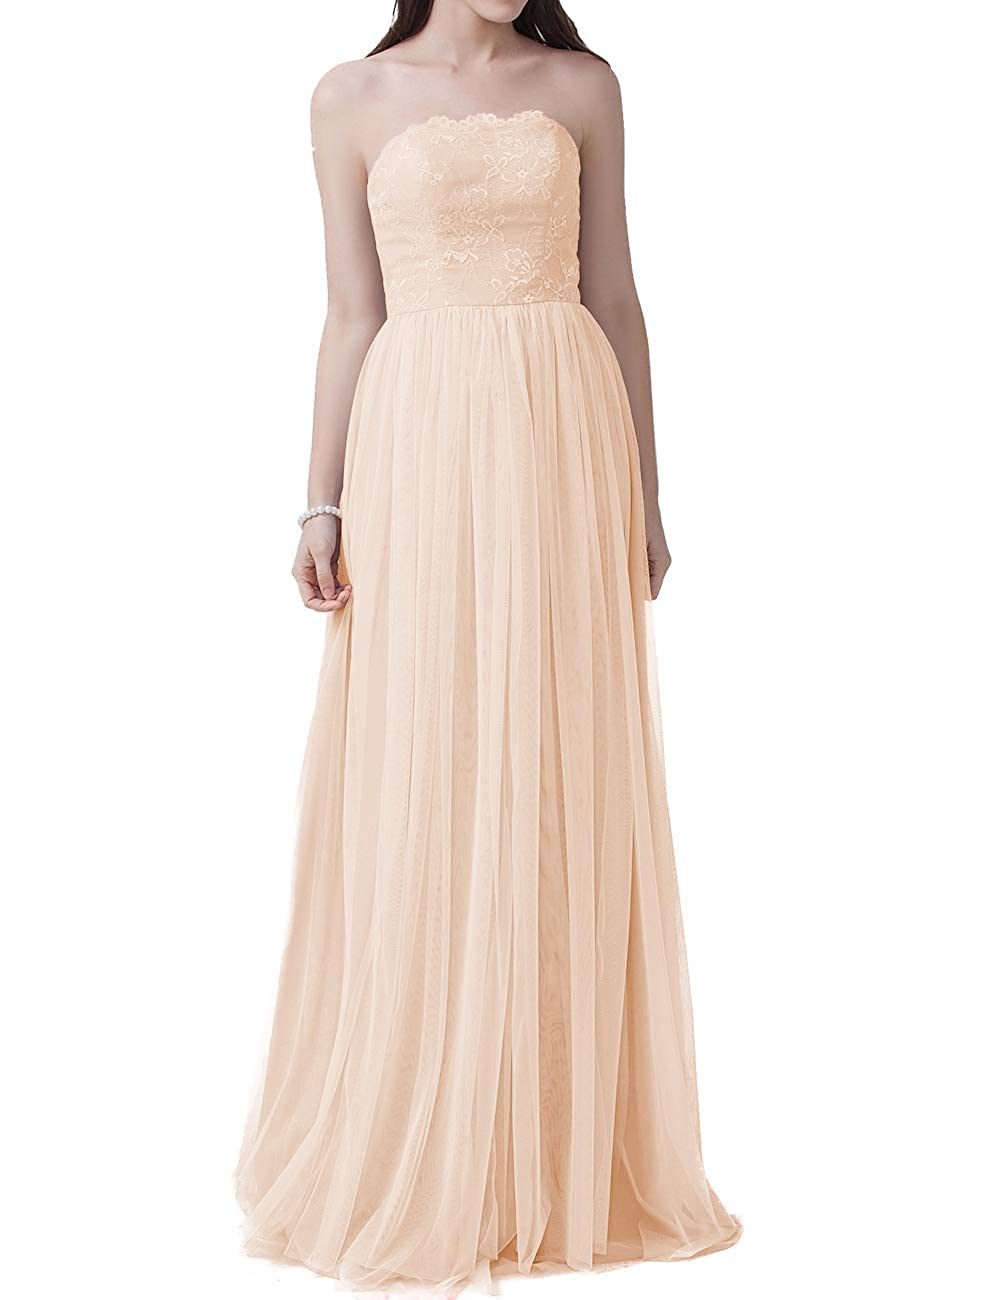 Champagne EDressy Congreenible Bridesmaid Dresses Long Tulle Prom Evening Gowns Wedding Party Dress Sleeveless